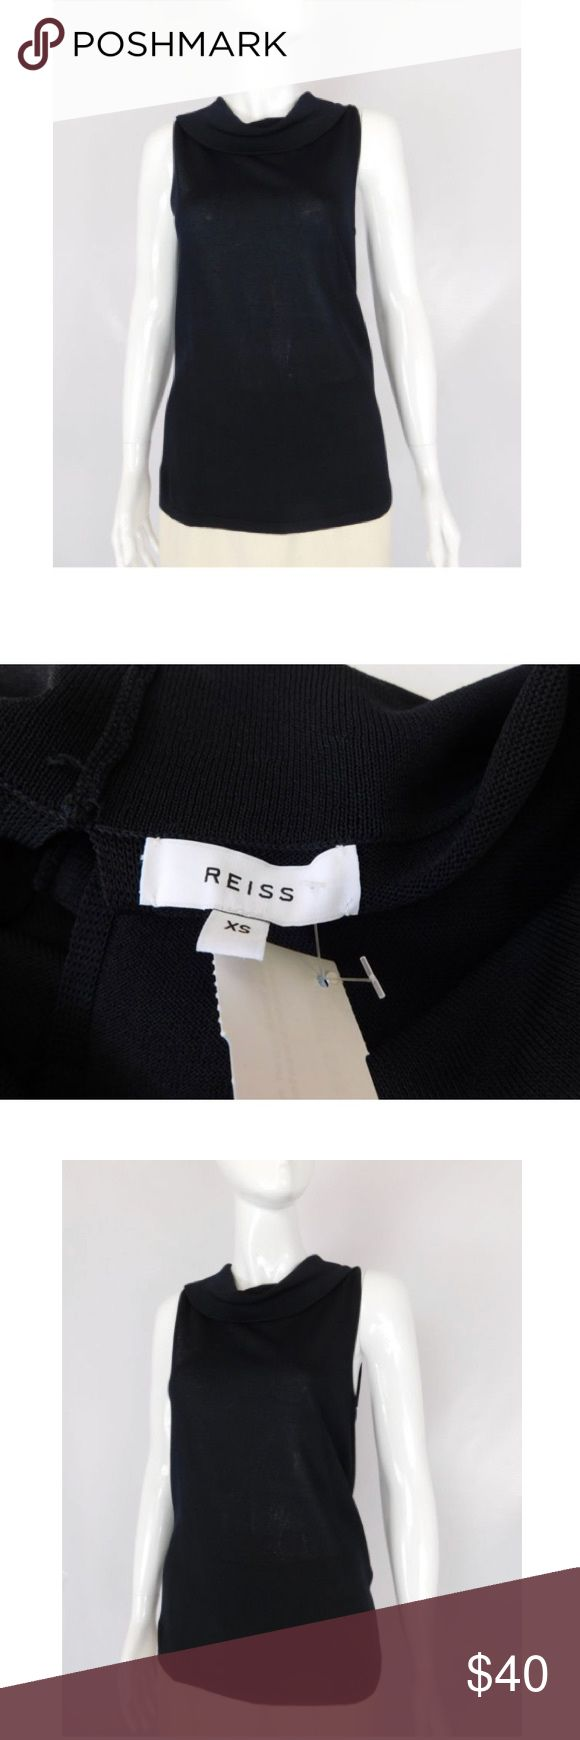 Reiss  Sheer Knit Cowl Neck Sleeveless Sweater Reiss Black Sheer Knit Cowl Neck Sleeveless Sweater - Size XS  Size XS Viscose blen Sleeveless style Cowl neck Keyhole back 